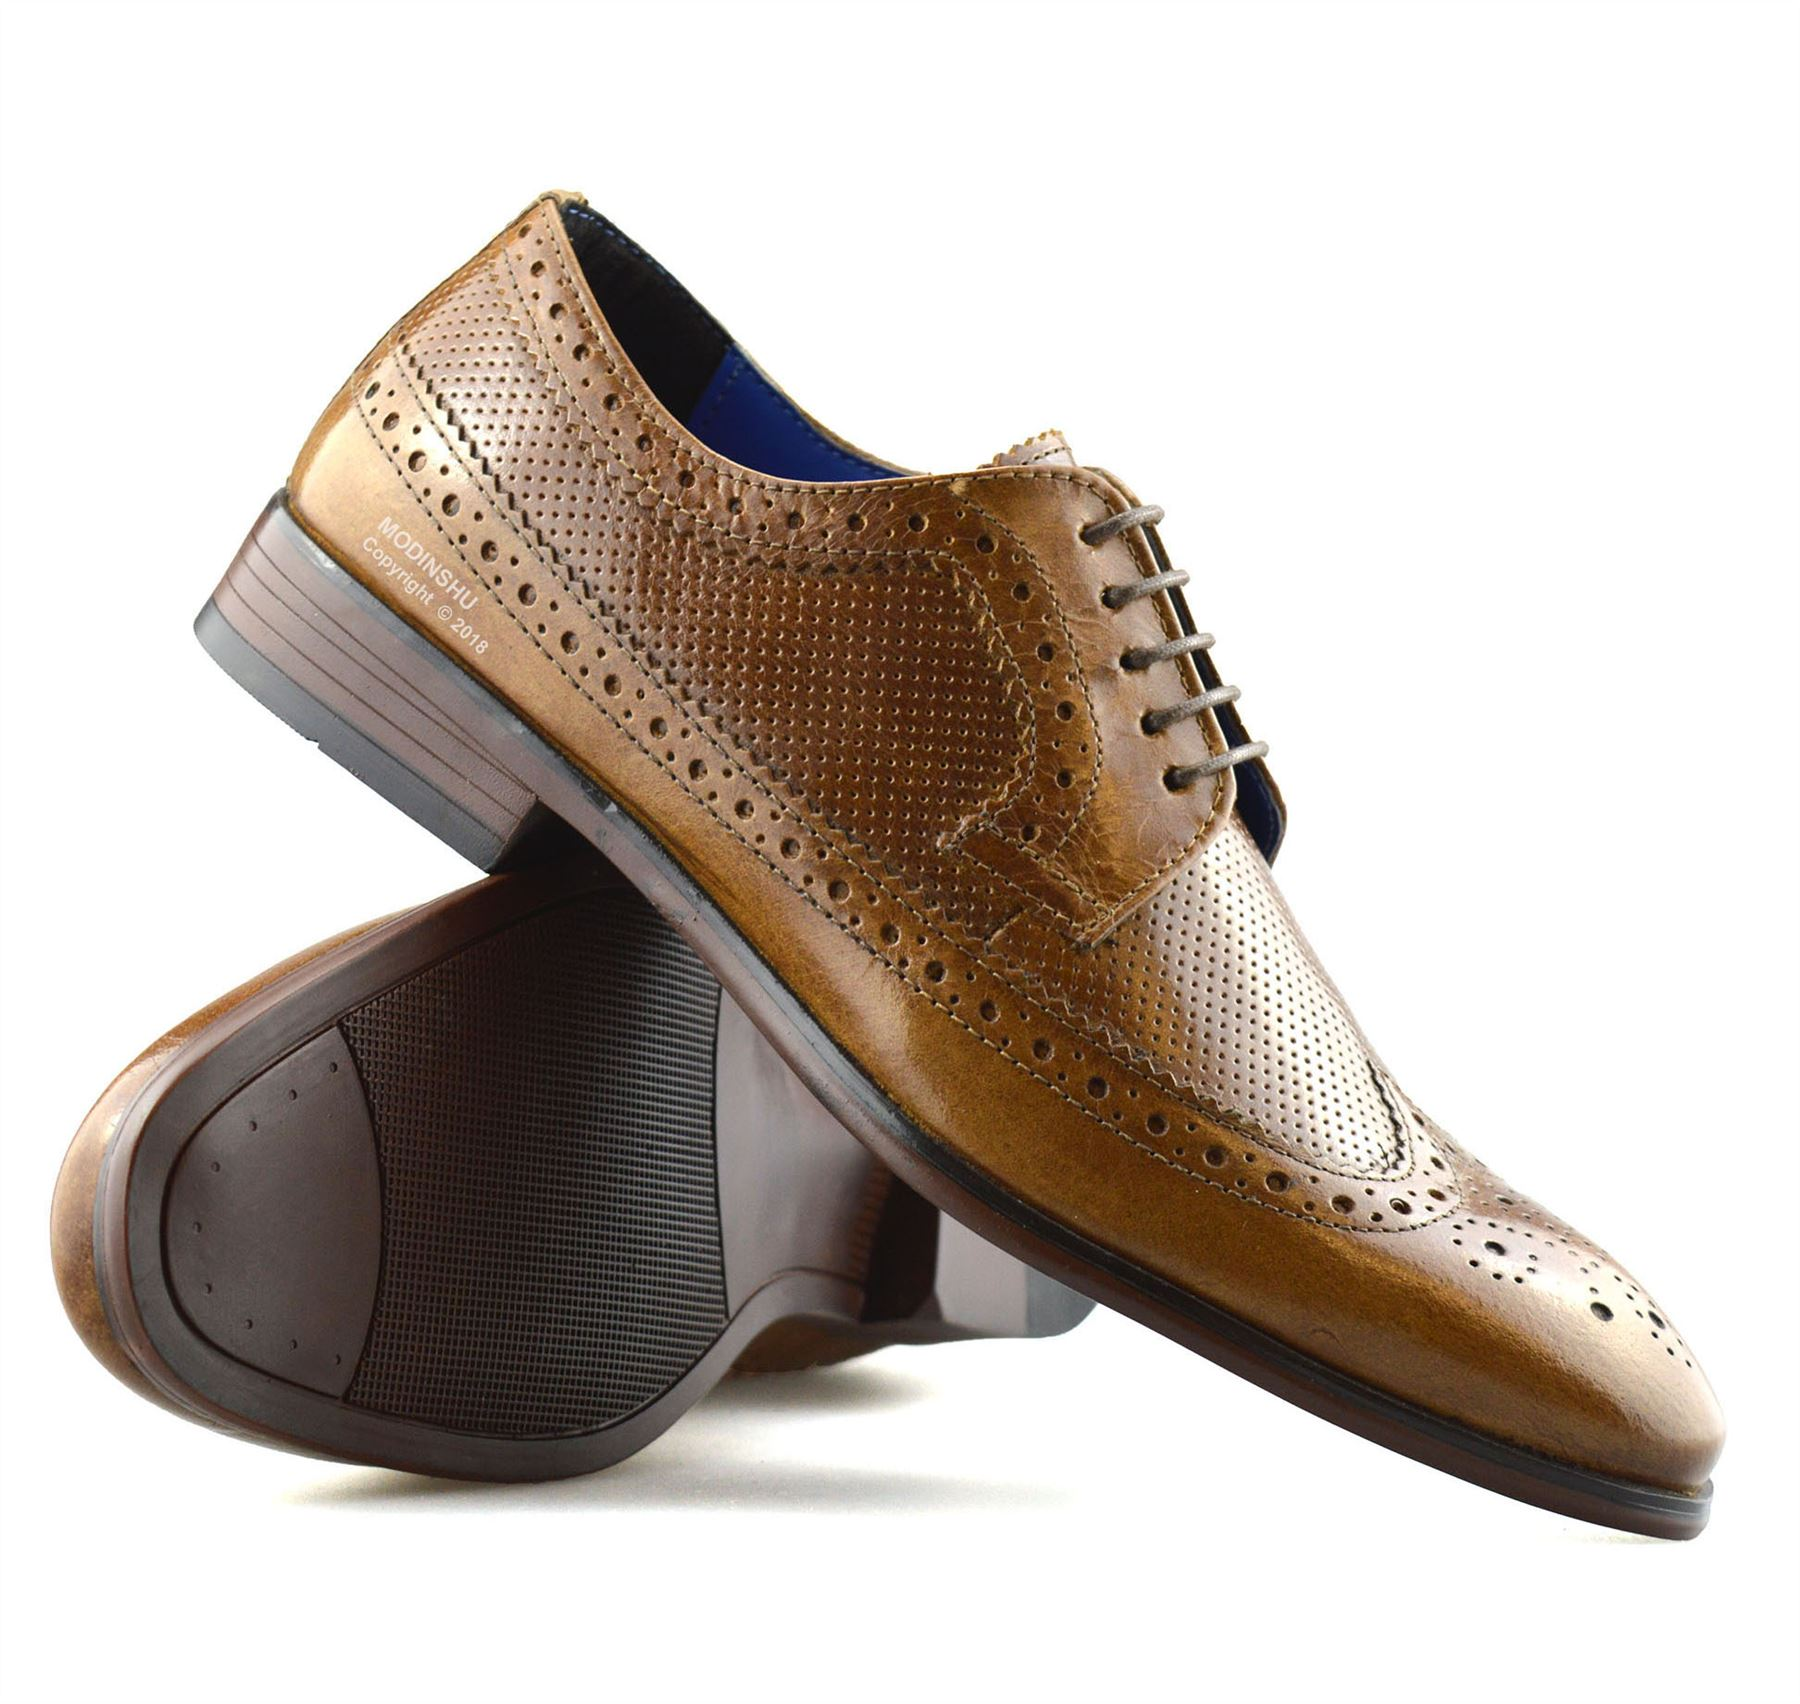 Mens-Leather-Brogues-Smart-Casual-Formal-Office-Lace-Up-Oxford-Brogue-Shoes-Size thumbnail 17